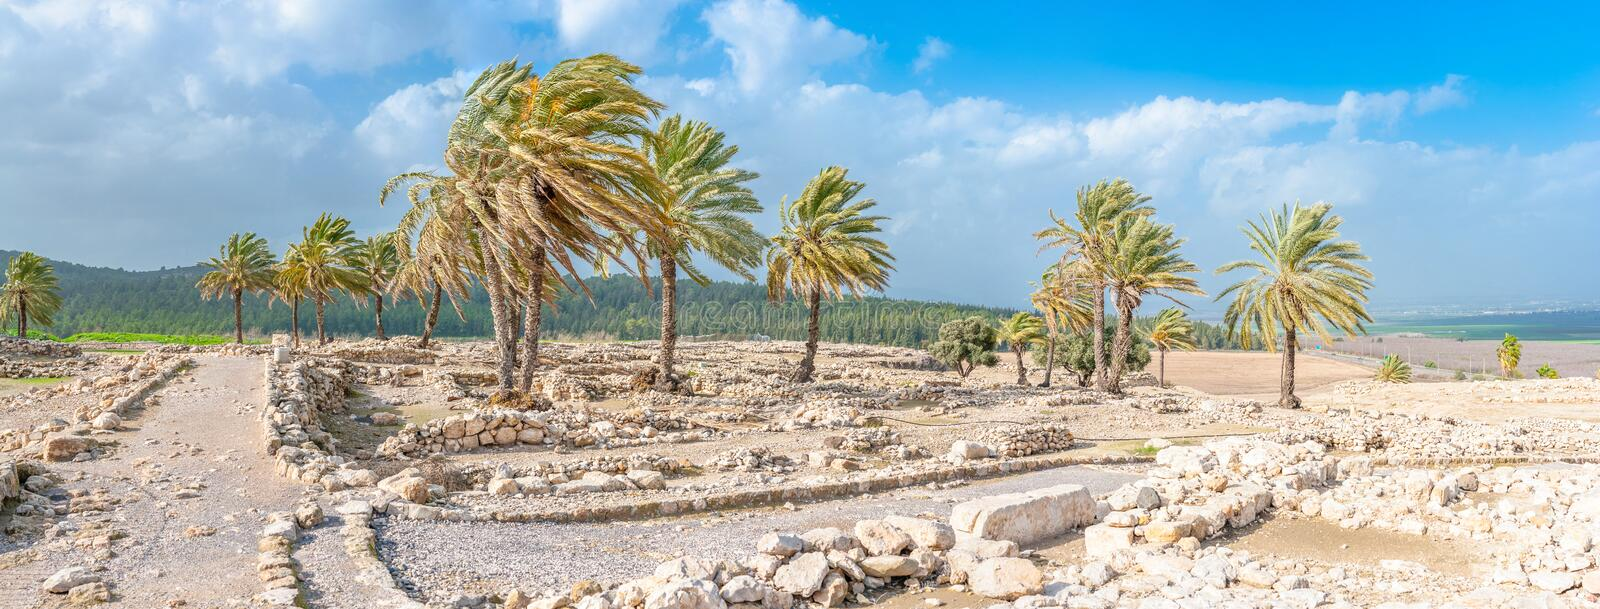 Tel Megiddo ruins. Tel Megiddo in norhtern Israel is better known under it's Greek name - Armageddon. The Book of Revelation mentions an apocalyptic battle at stock photography